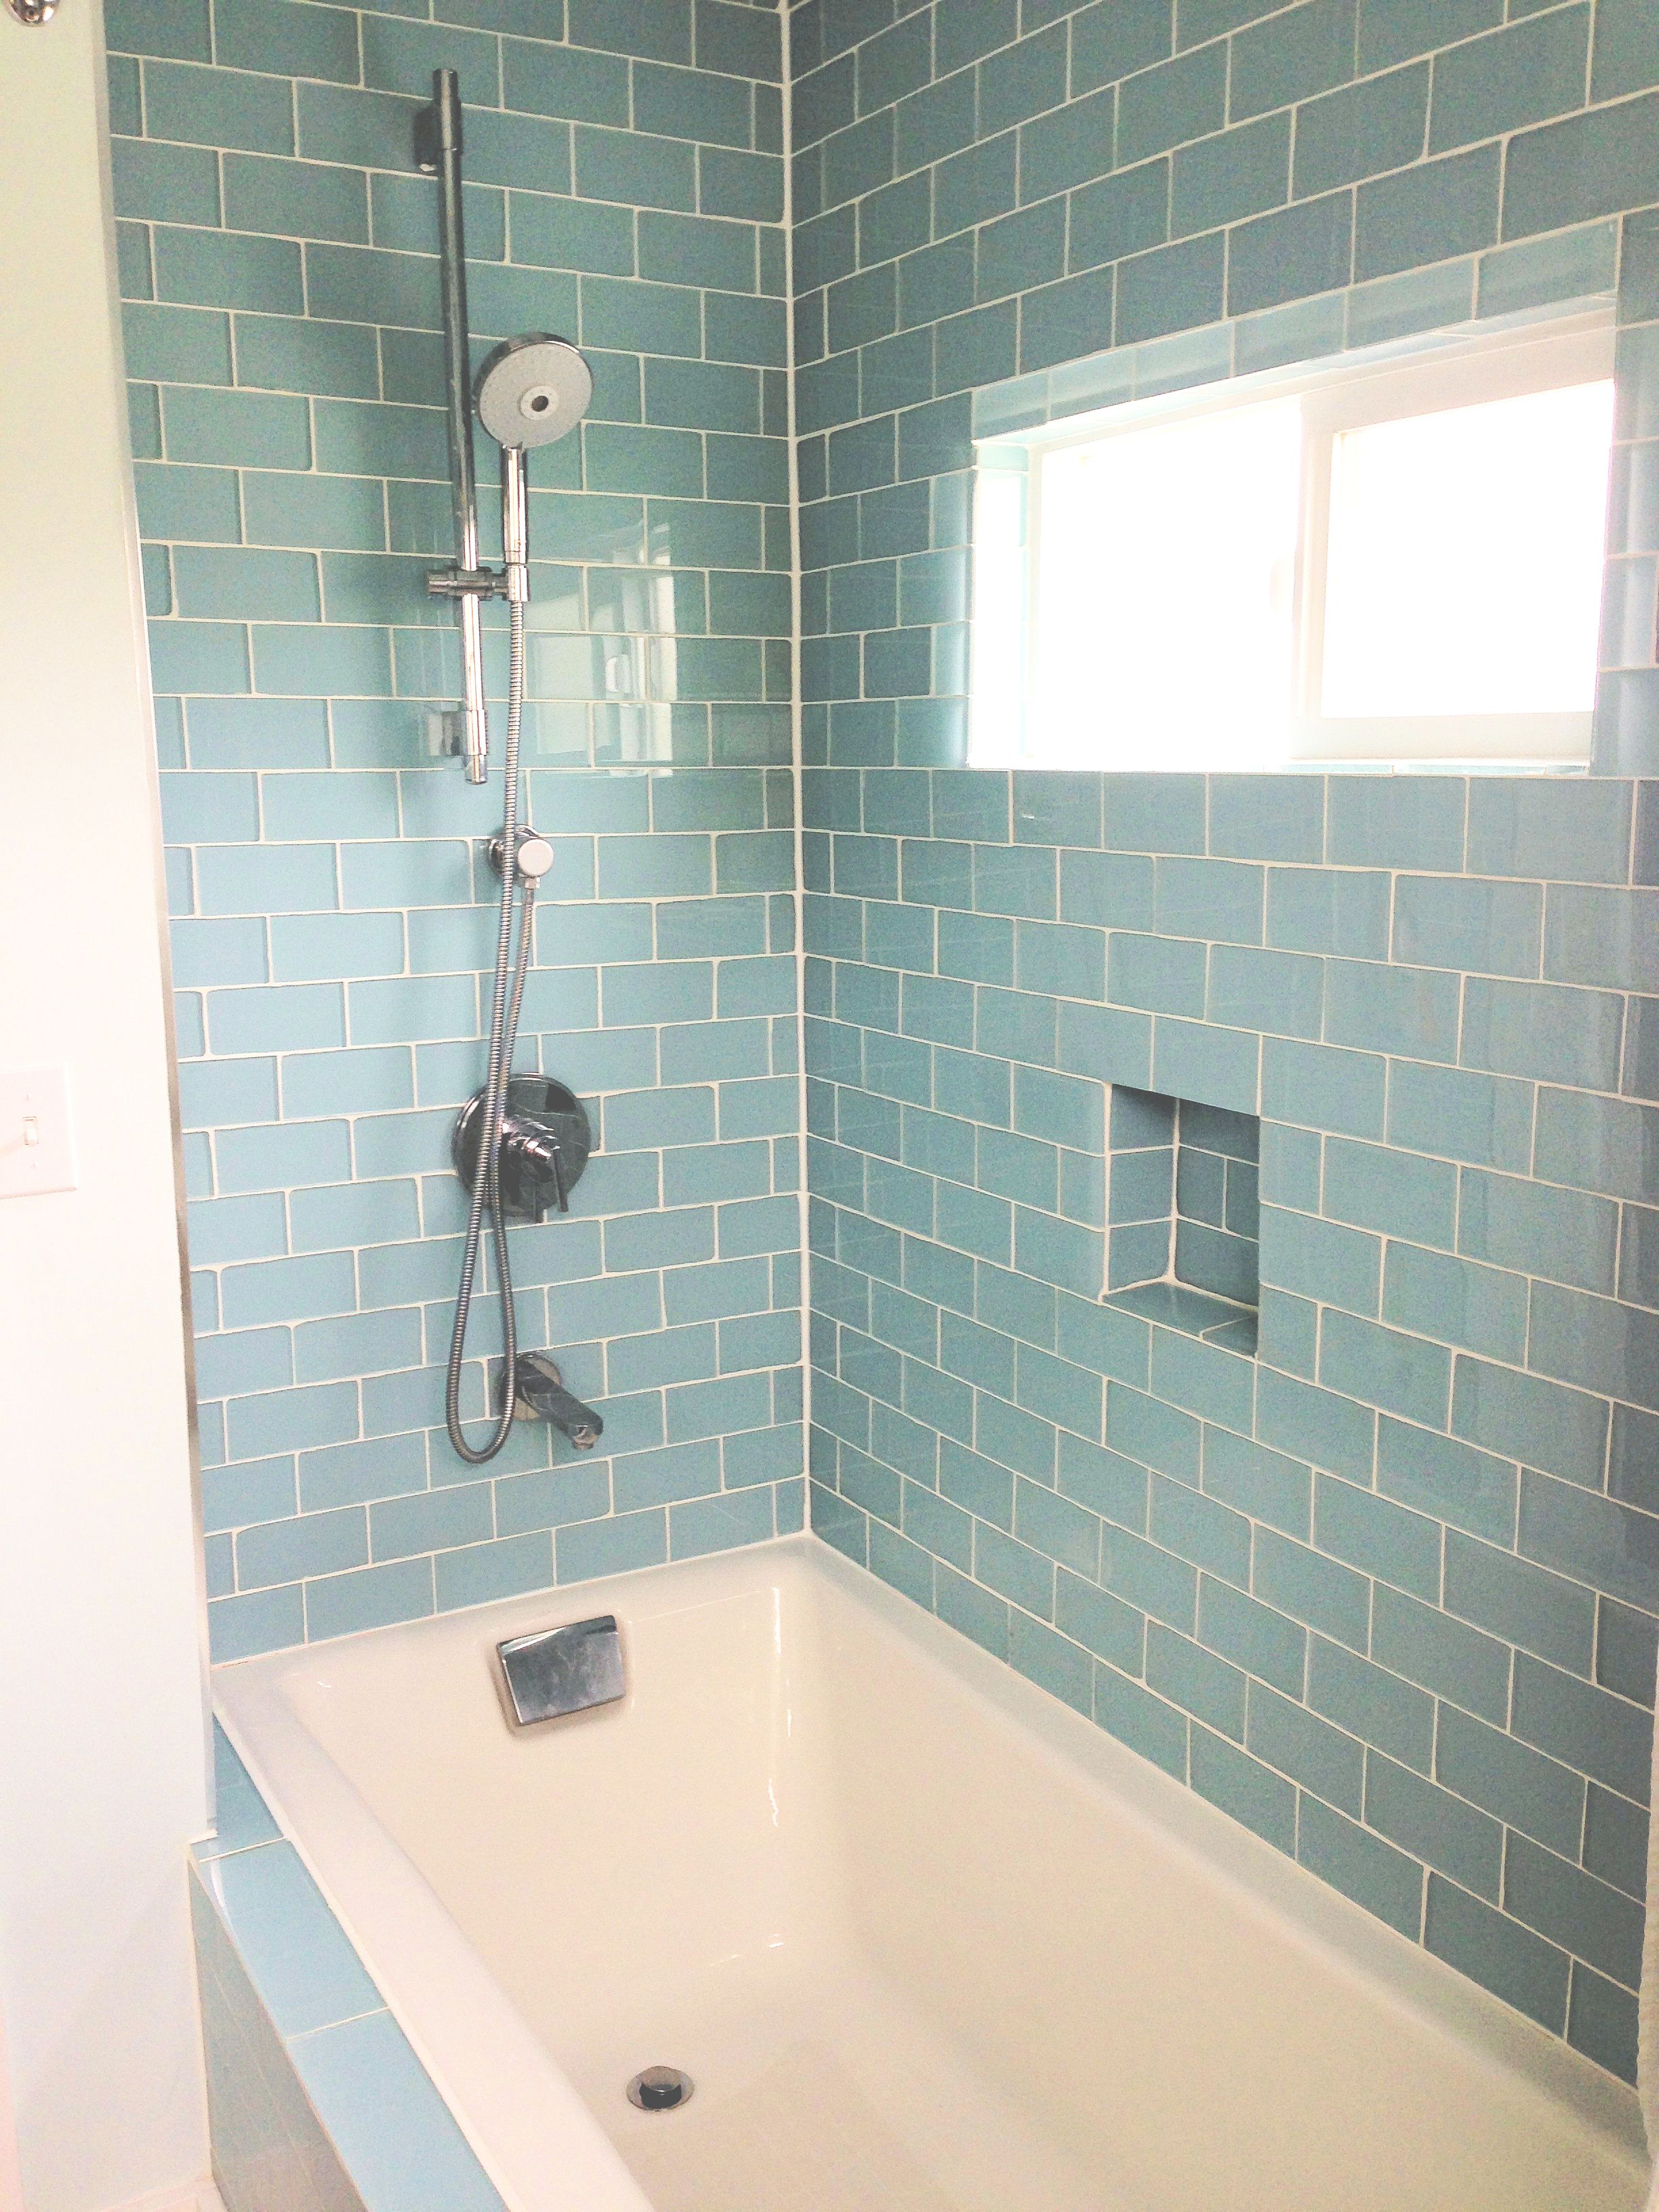 Vapor Glass Subway Tile | Bathrooms | Pinterest | Subway tiles ...